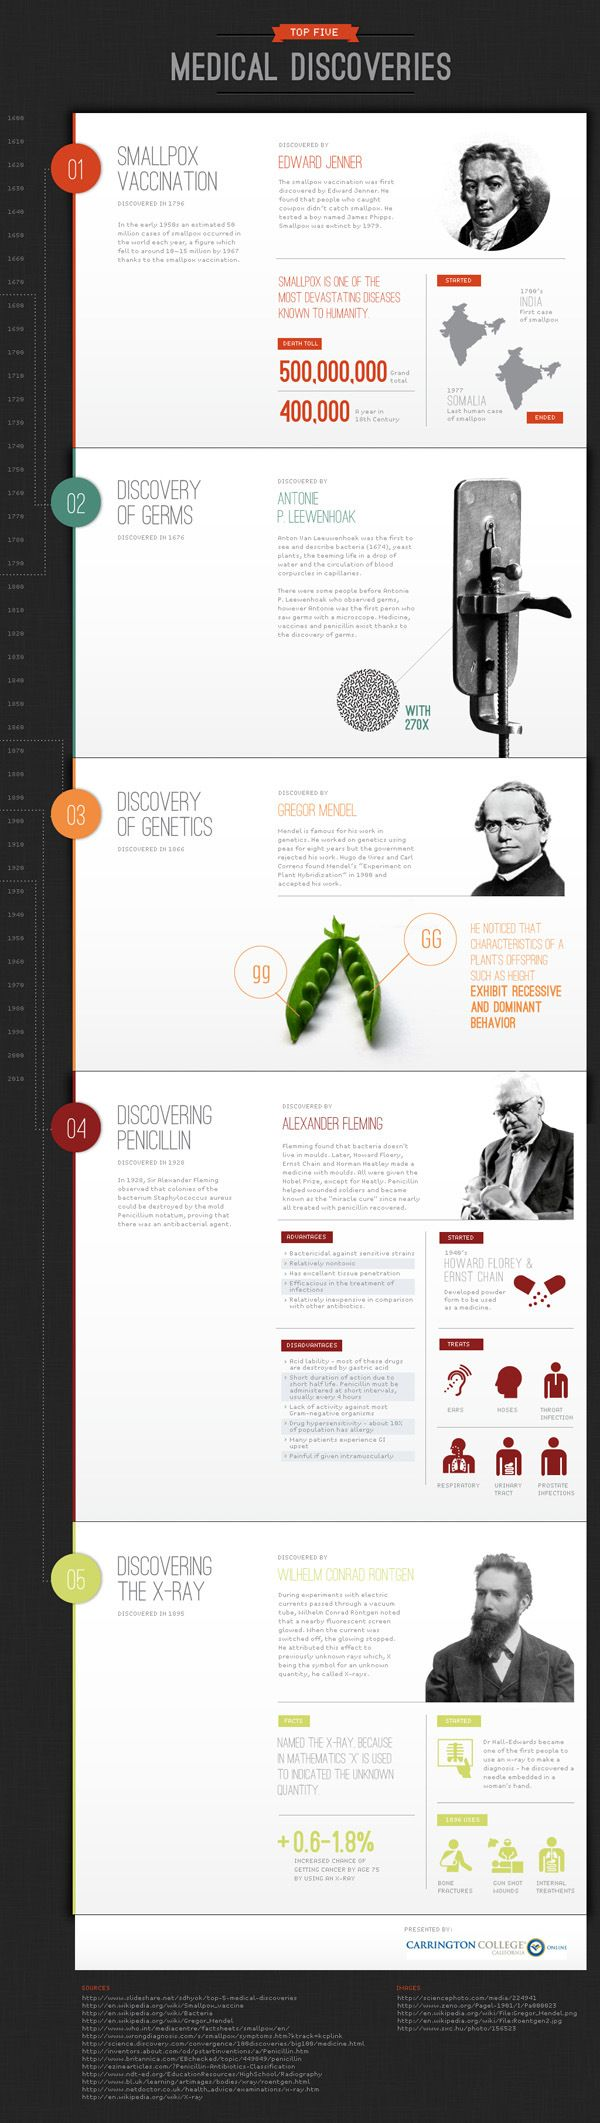 Top Five Medical Discoveries[INFOGRAPHIC]